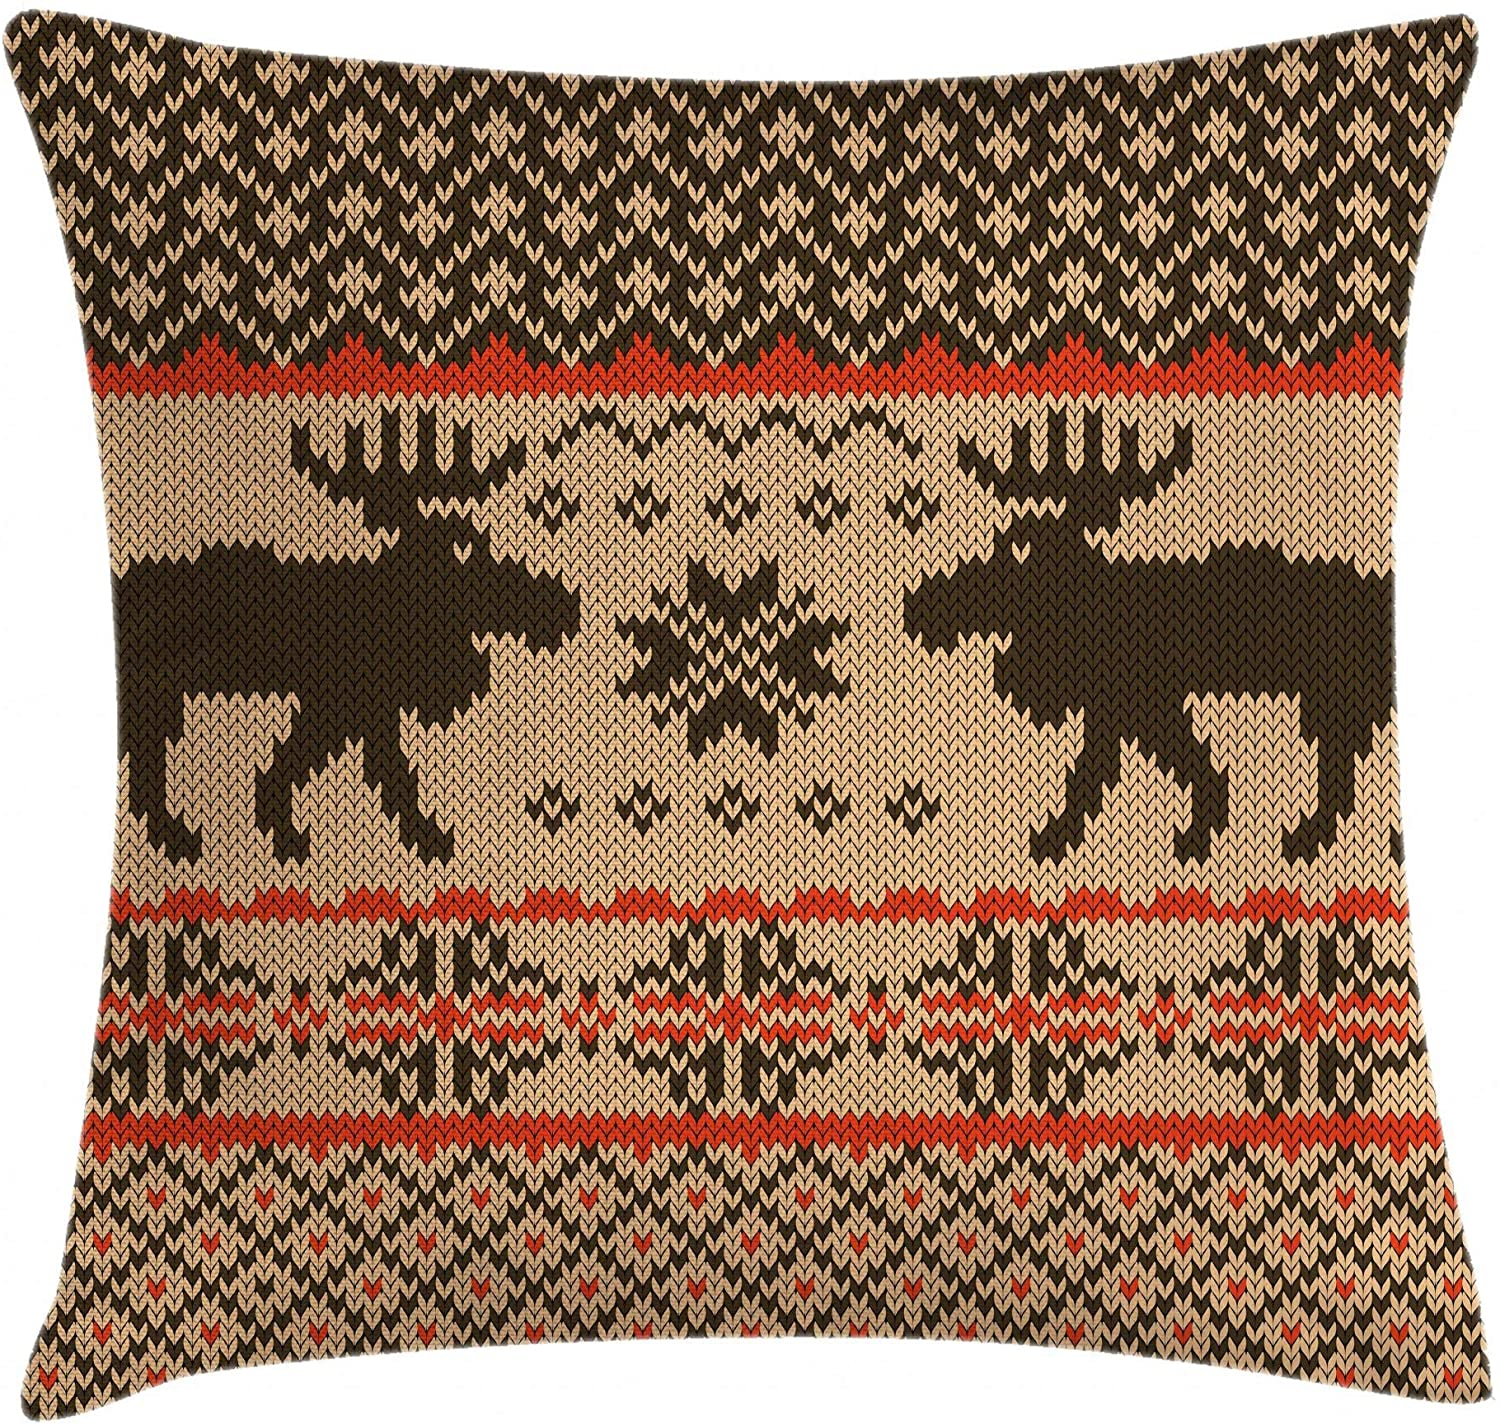 Ambesonne Cabin Throw Pillow Cushion Cover, Knitted Swatch with Deers and Snowflakes Classical Country Plaid Digital, Decorative Square Accent Pillow Case, 18